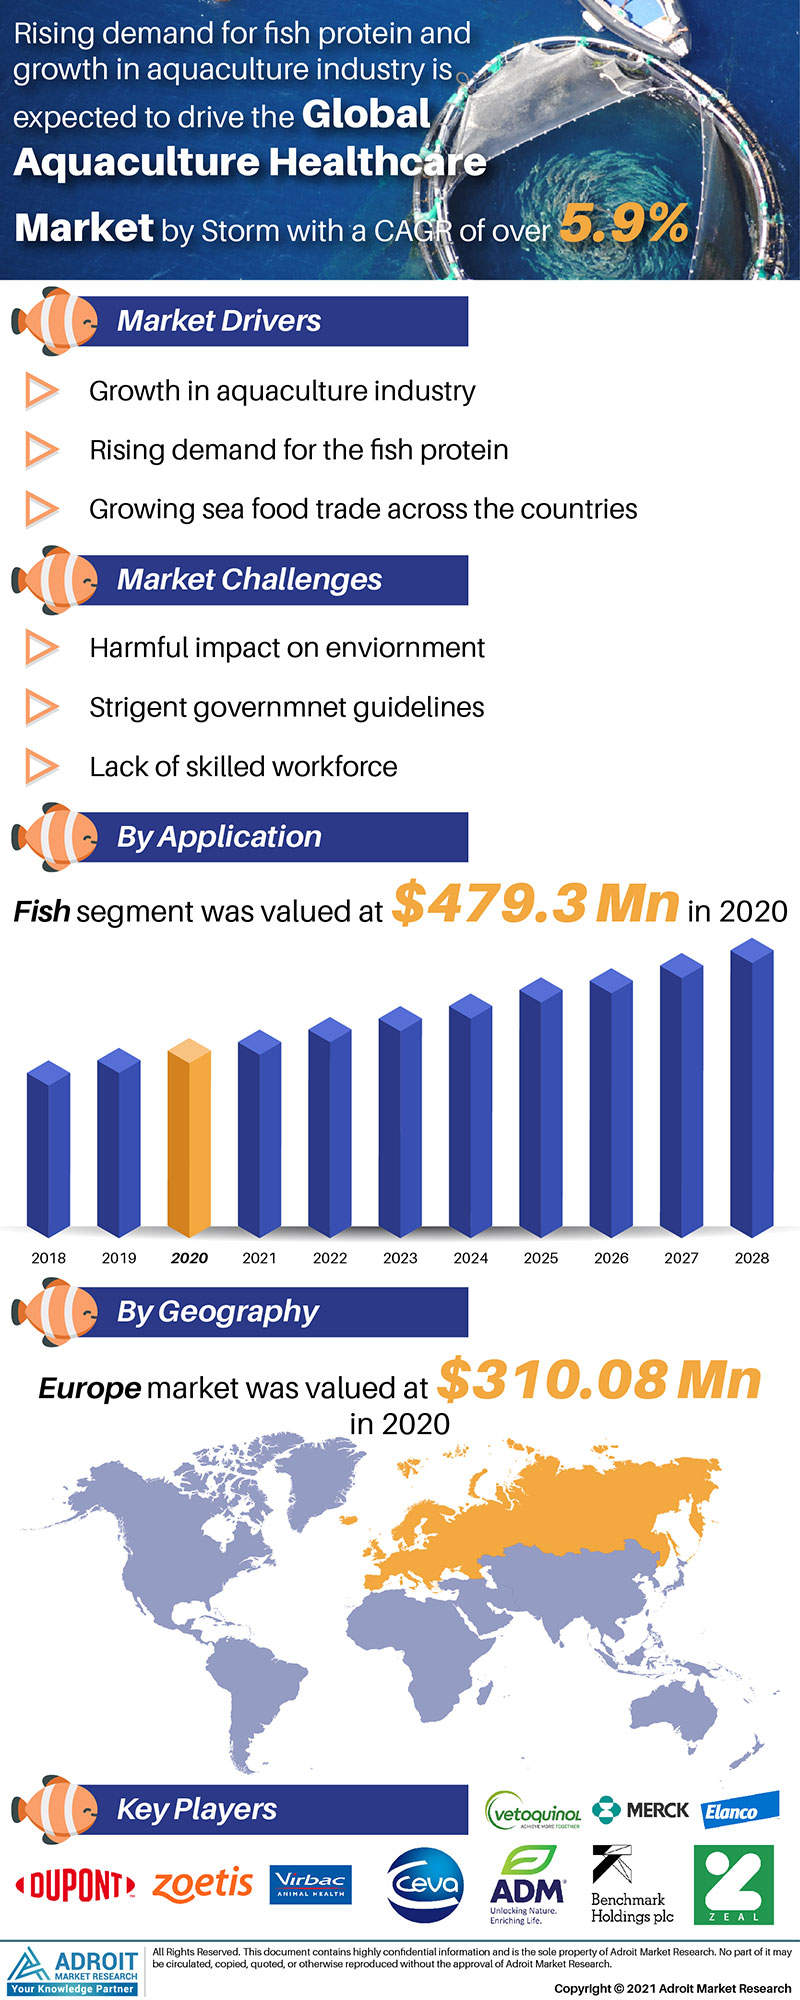 Aquaculture Healthcare Market Trends and Forecasts Research Report